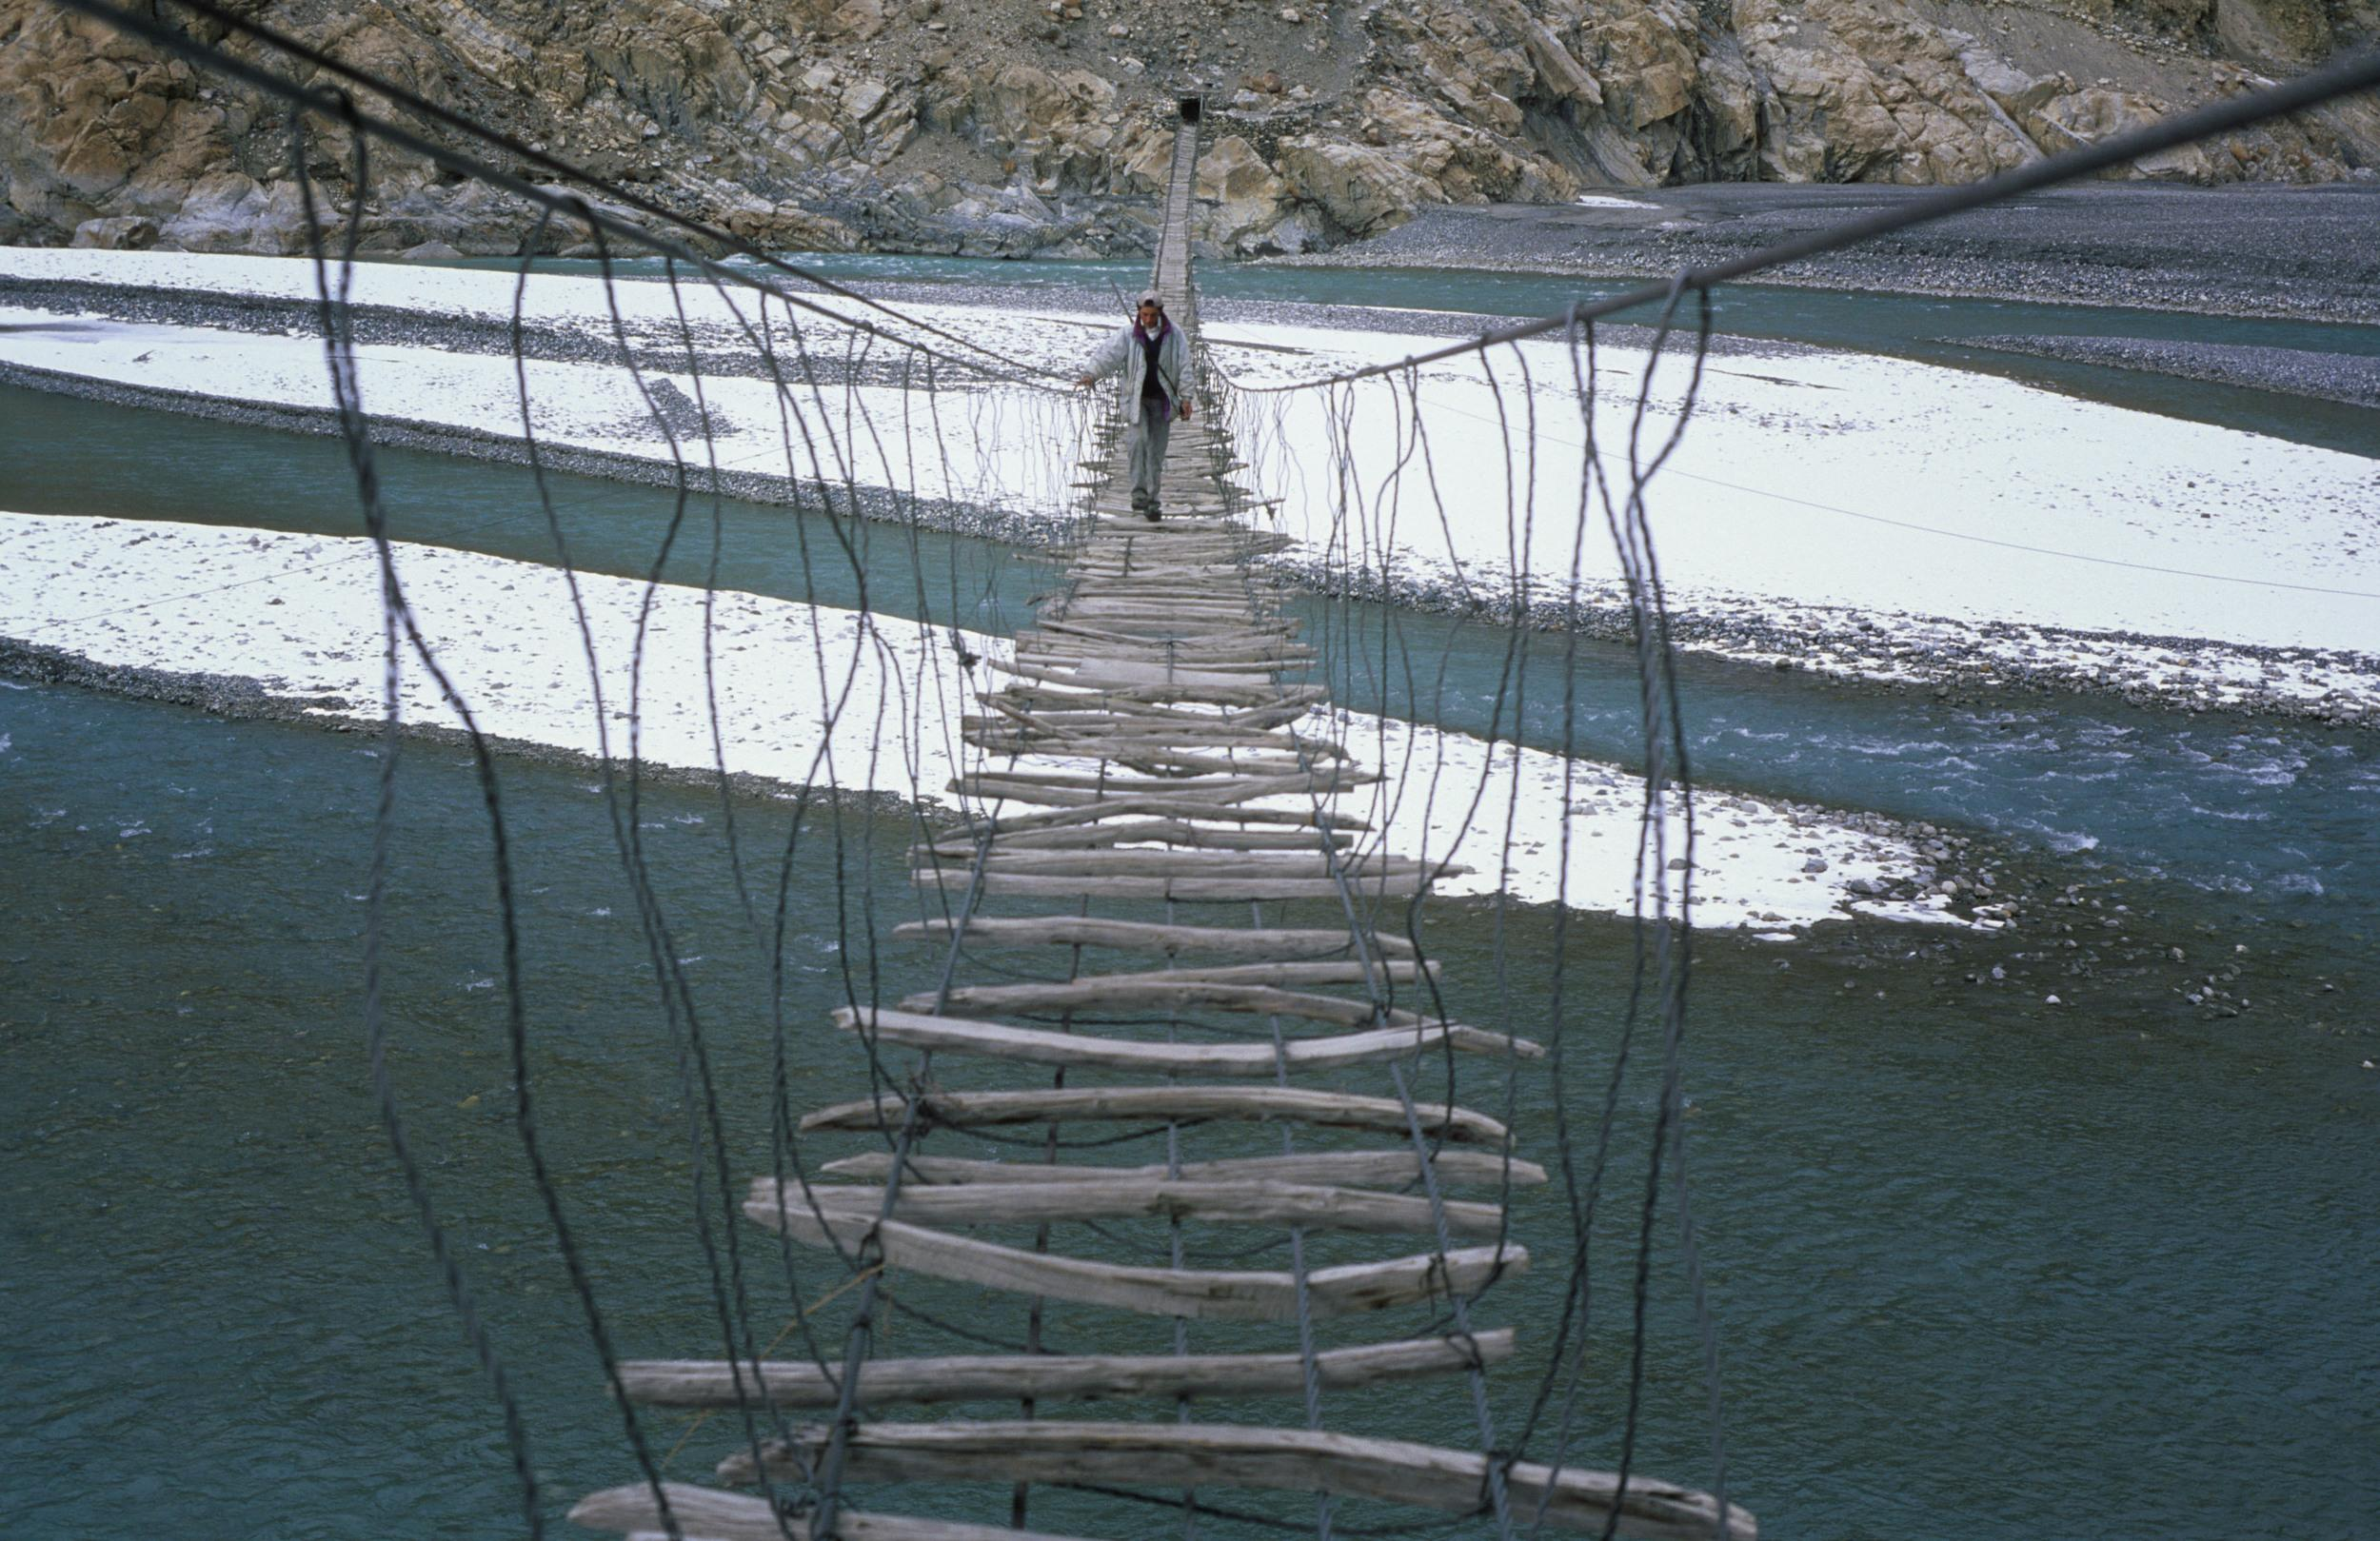 Even the bravest of thrill seekers will think twice before crossing this bridge in Pakistan, but for locals in the Hunza Valley, a walk across Hussaini Bridge is the only option if they want to reach a nearby town. Located above Lake Borit, the hanging bridge has huge gaps between the planks and a wild side-to-side swing. Those who dare to look up while crossing the bridge, can take in the magnificent views of snow-capped mountains.